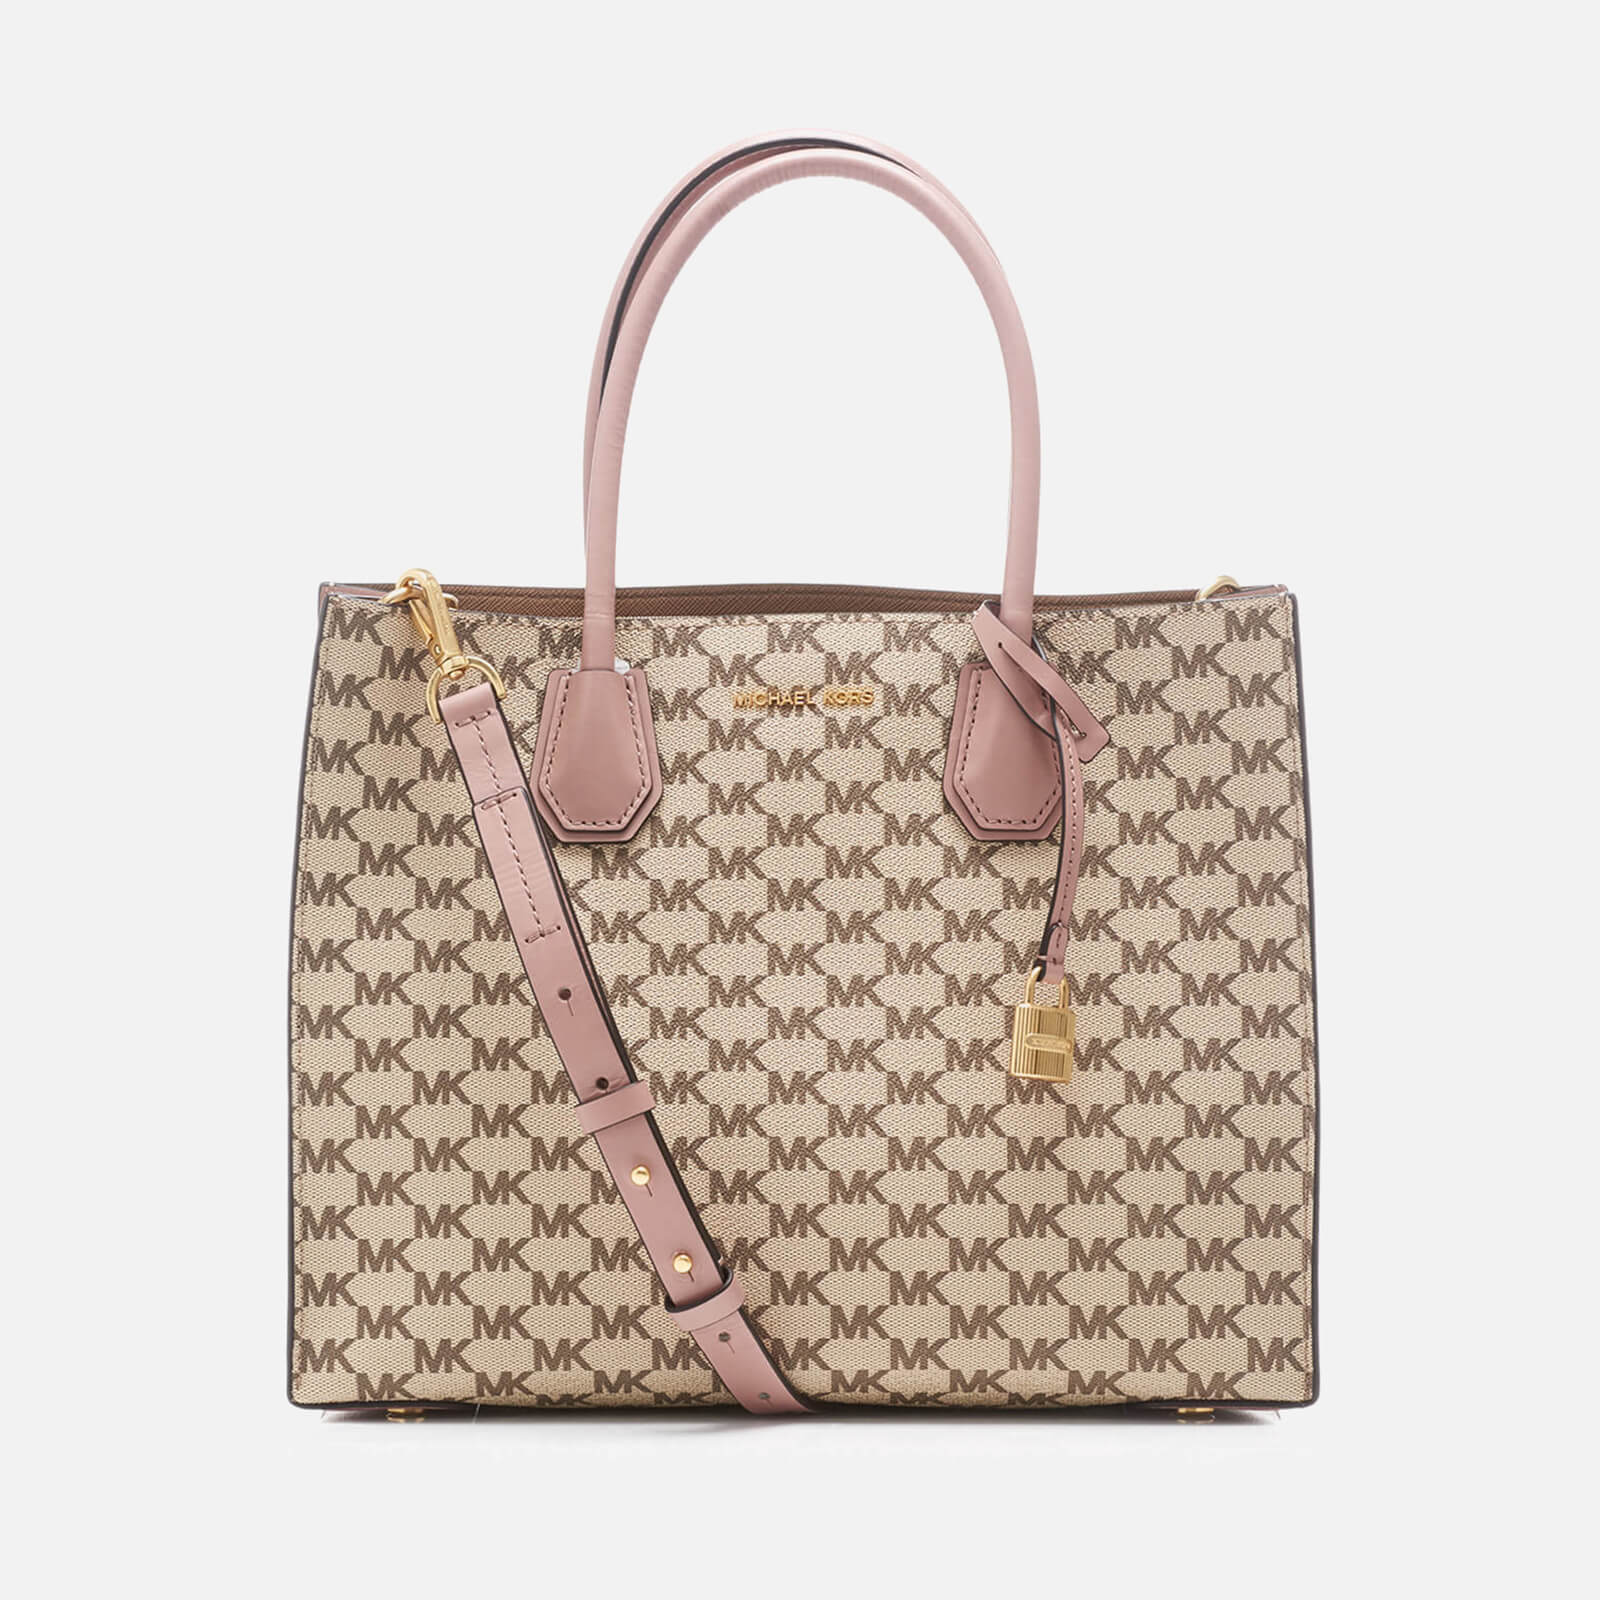 5d646b3a2d85 MICHAEL MICHAEL KORS Women's Mercer Large Convertible Tote Bag -  Natural/Fawn - Free UK Delivery over £50